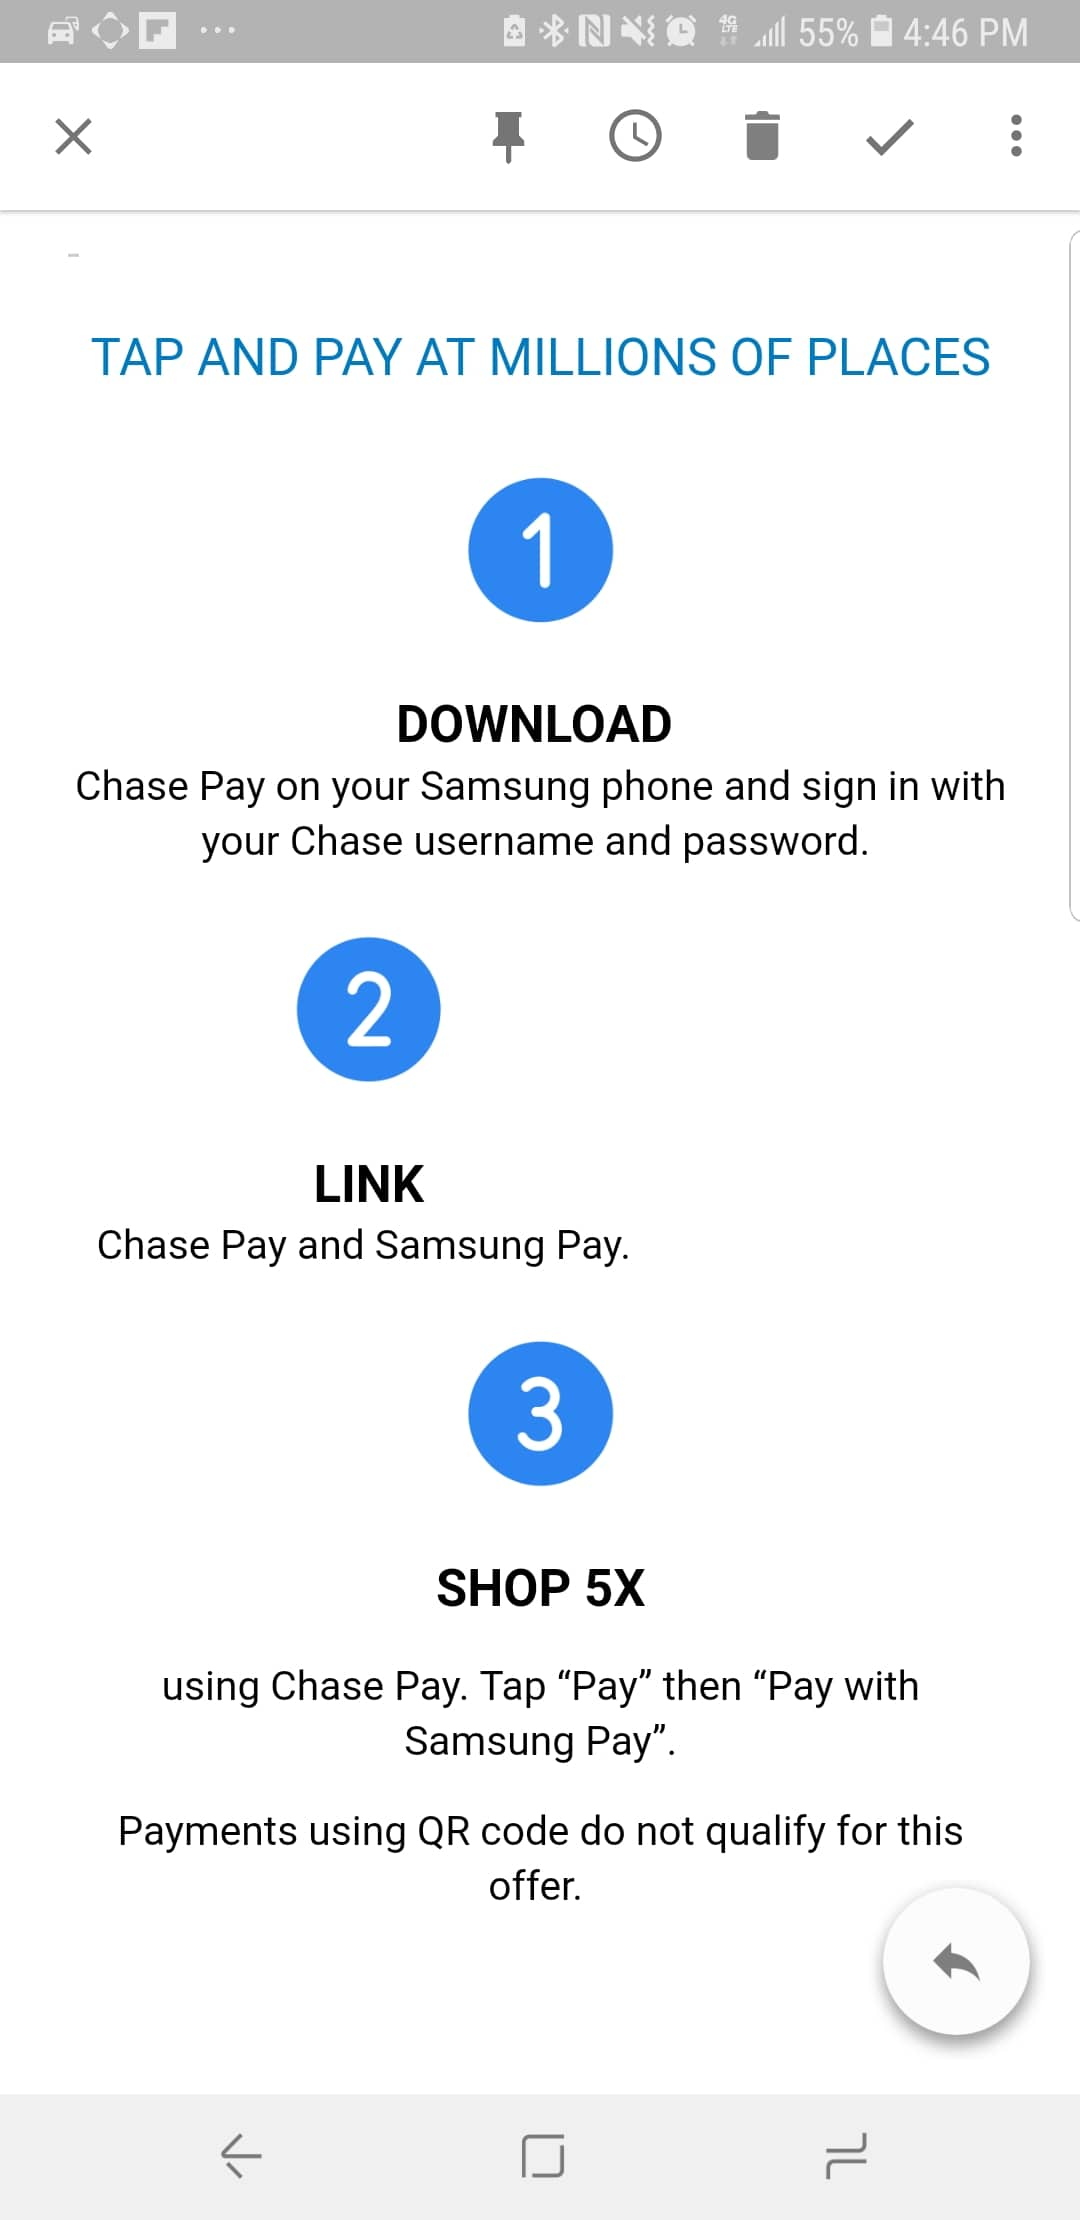 Get $25 by using chase card 5x times on Samsung Pay (ymmv